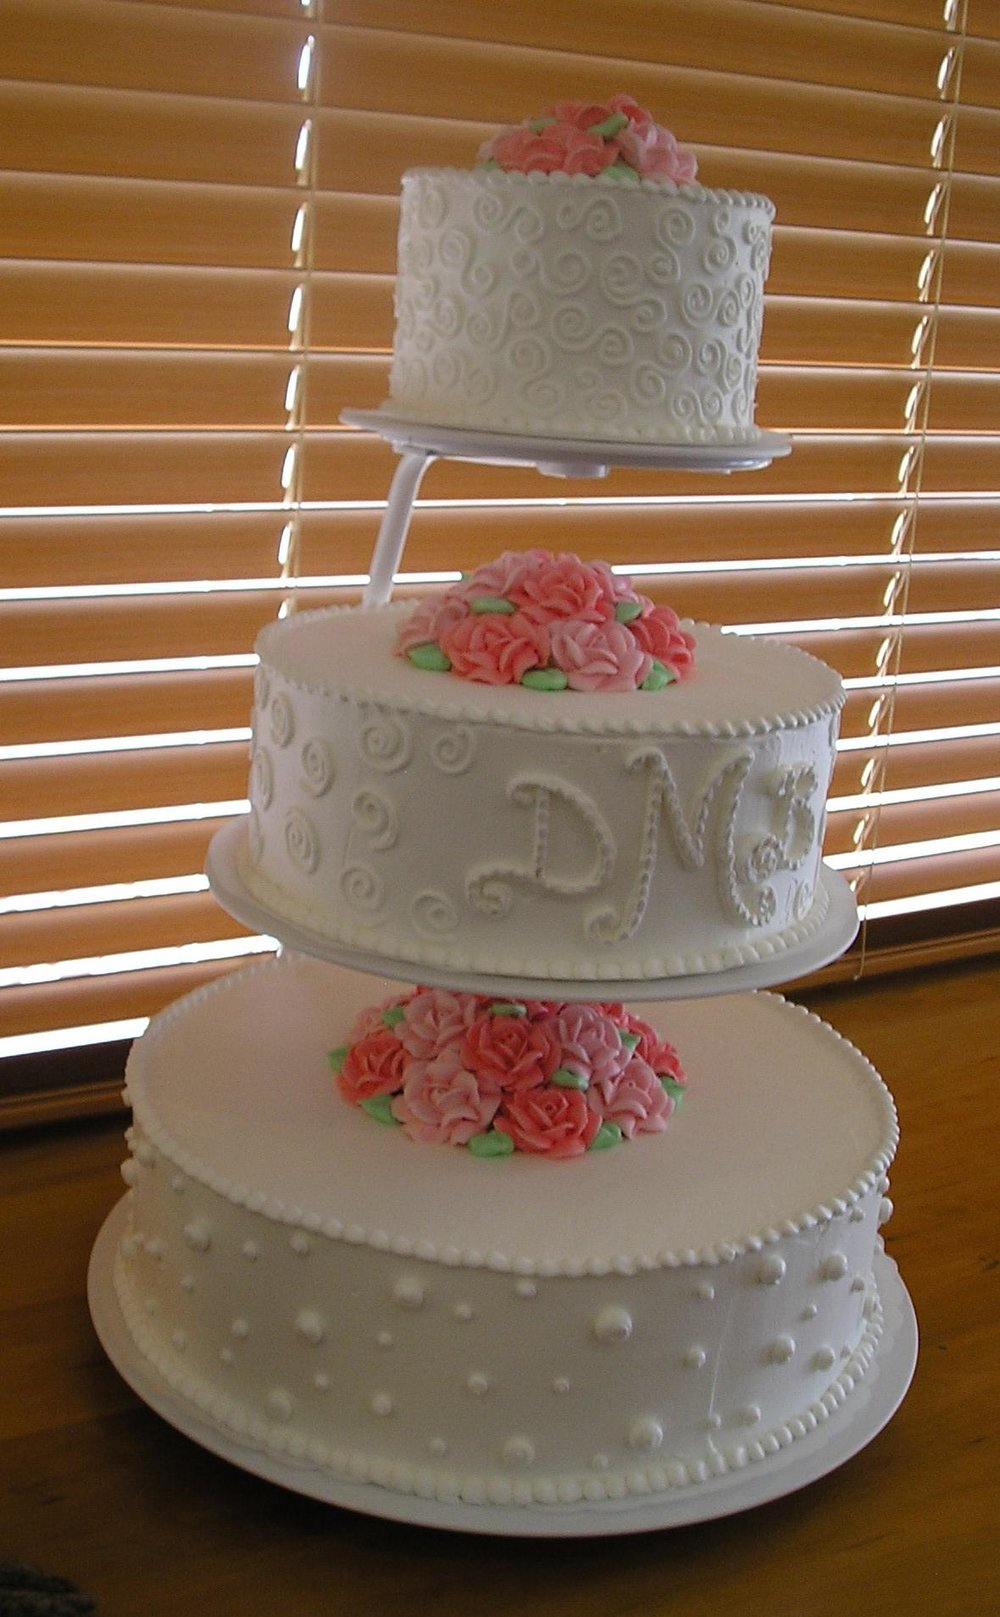 Floating Tier Cake Stand - Rental: $50Refund $25 when returned6